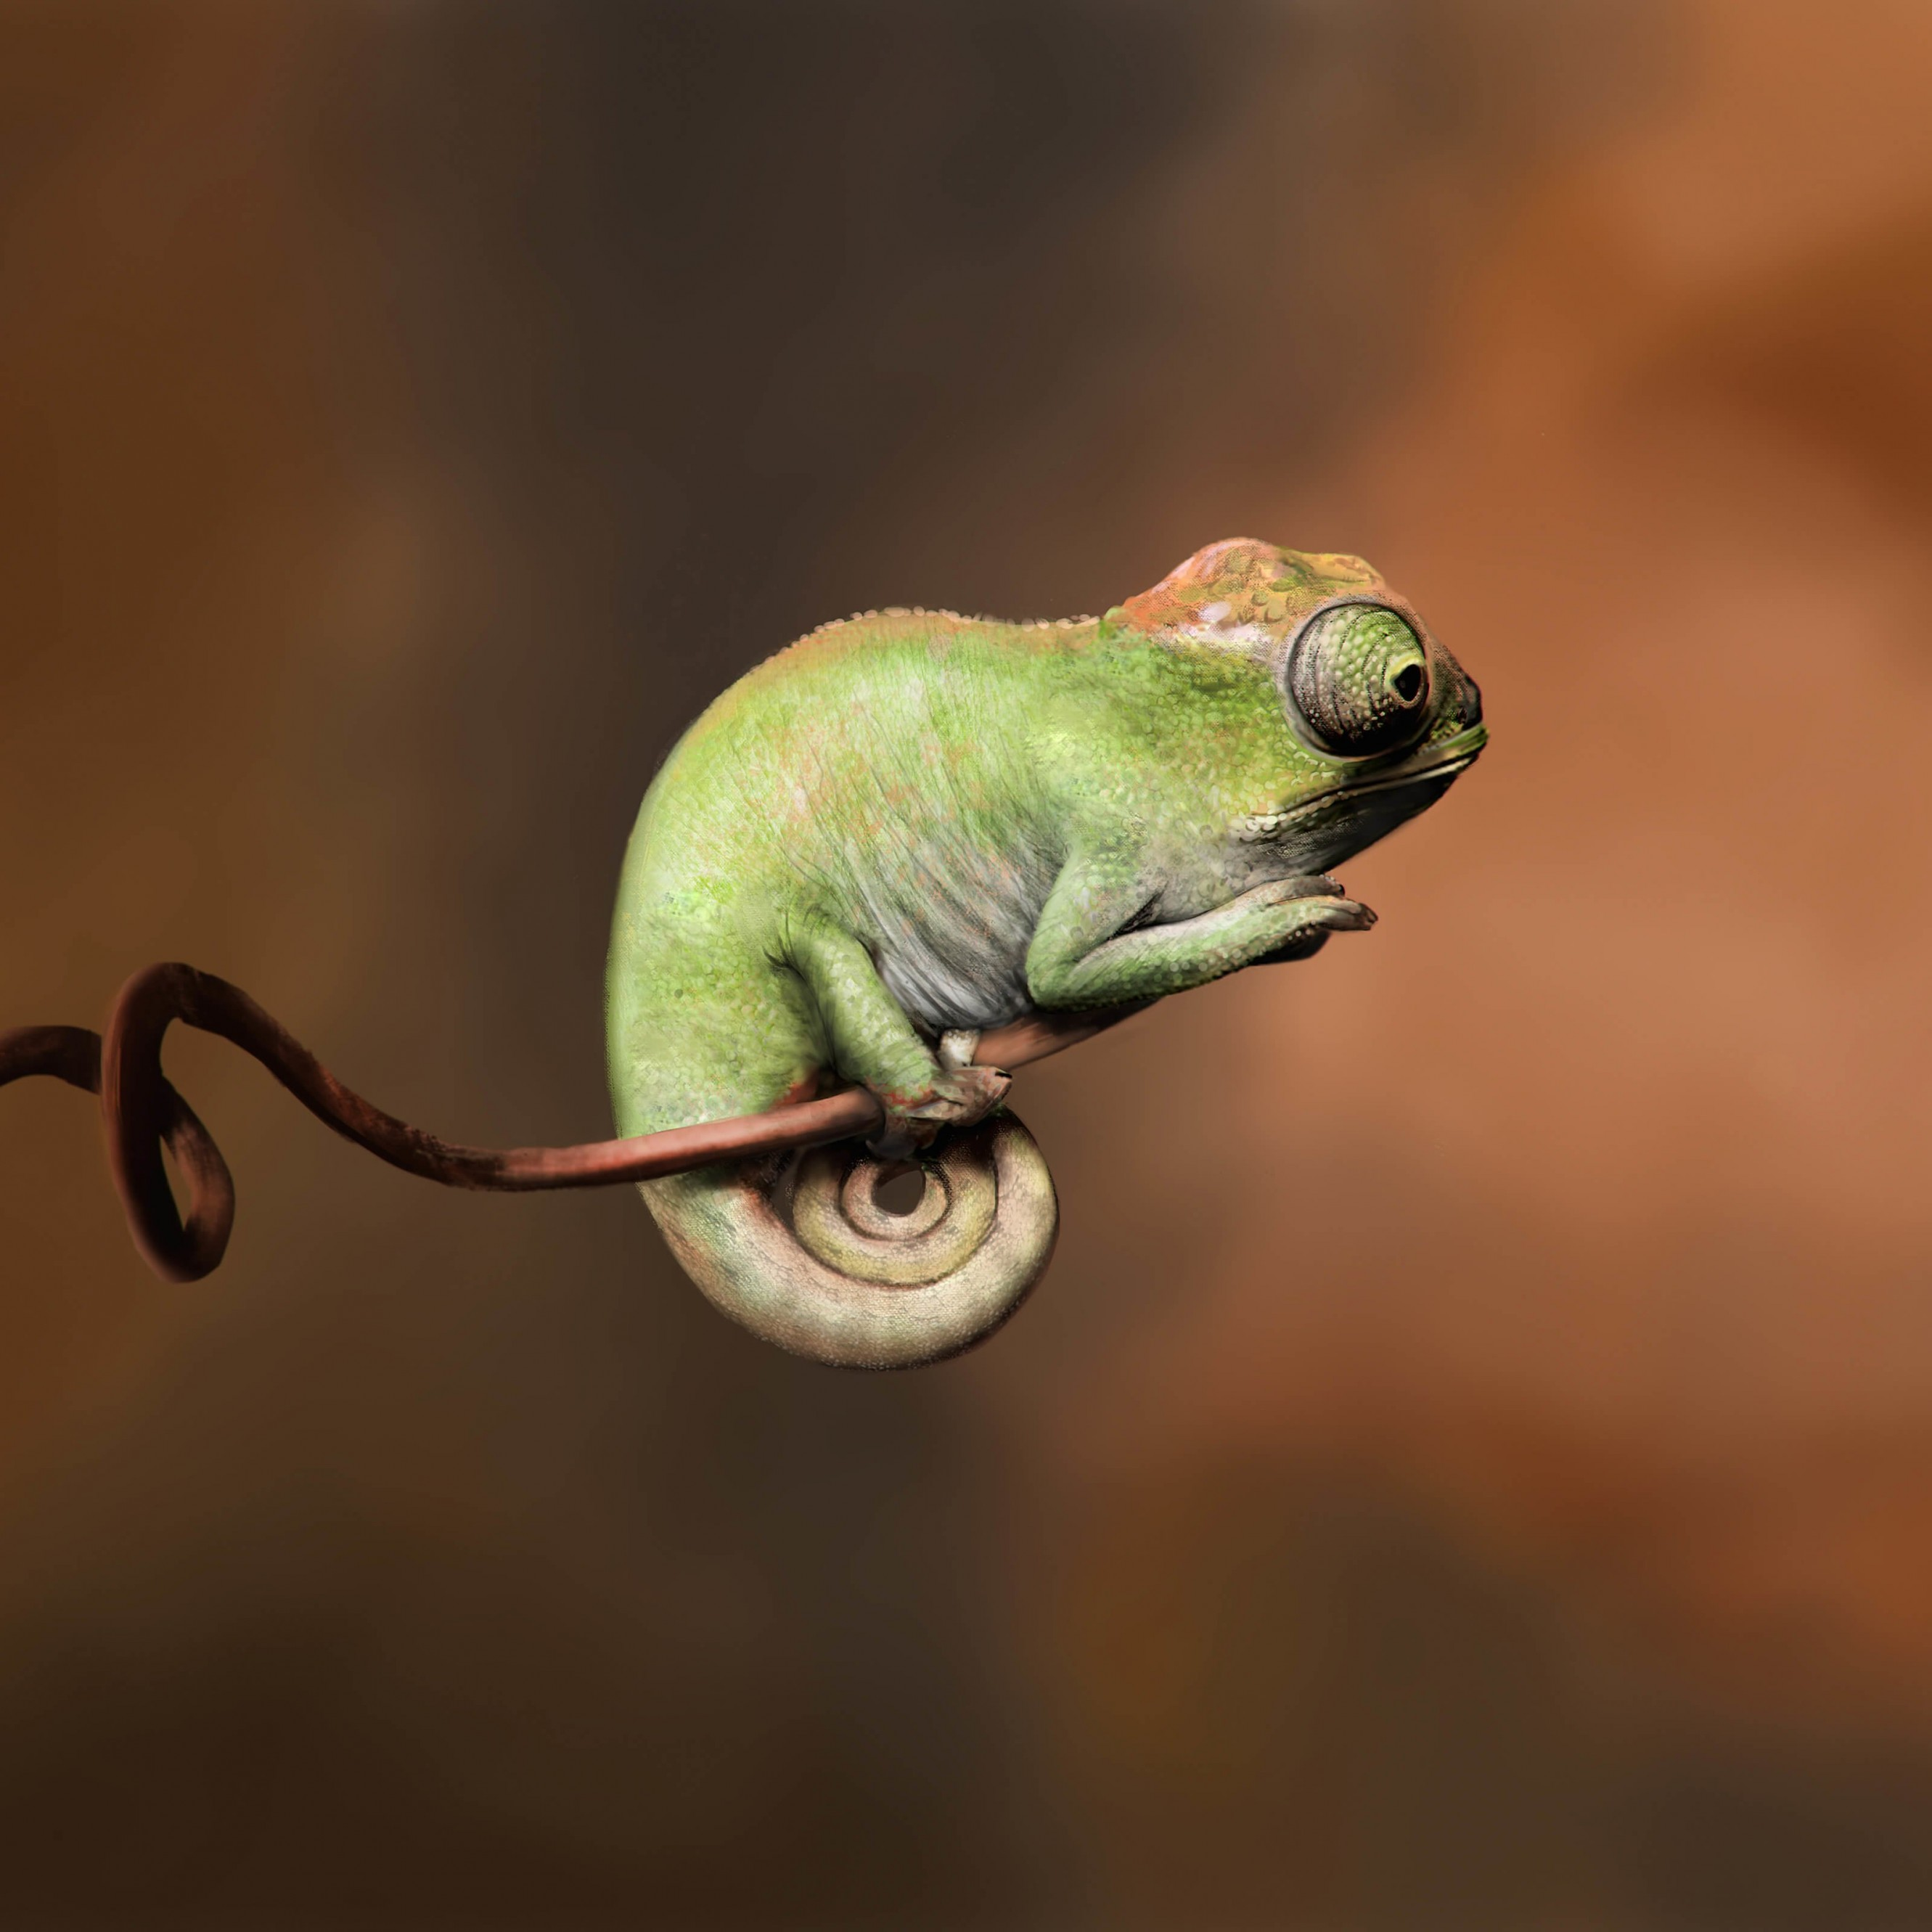 Baby Chameleon Perching On a Twisted Branch Wallpaper for Apple iPhone 6 Plus